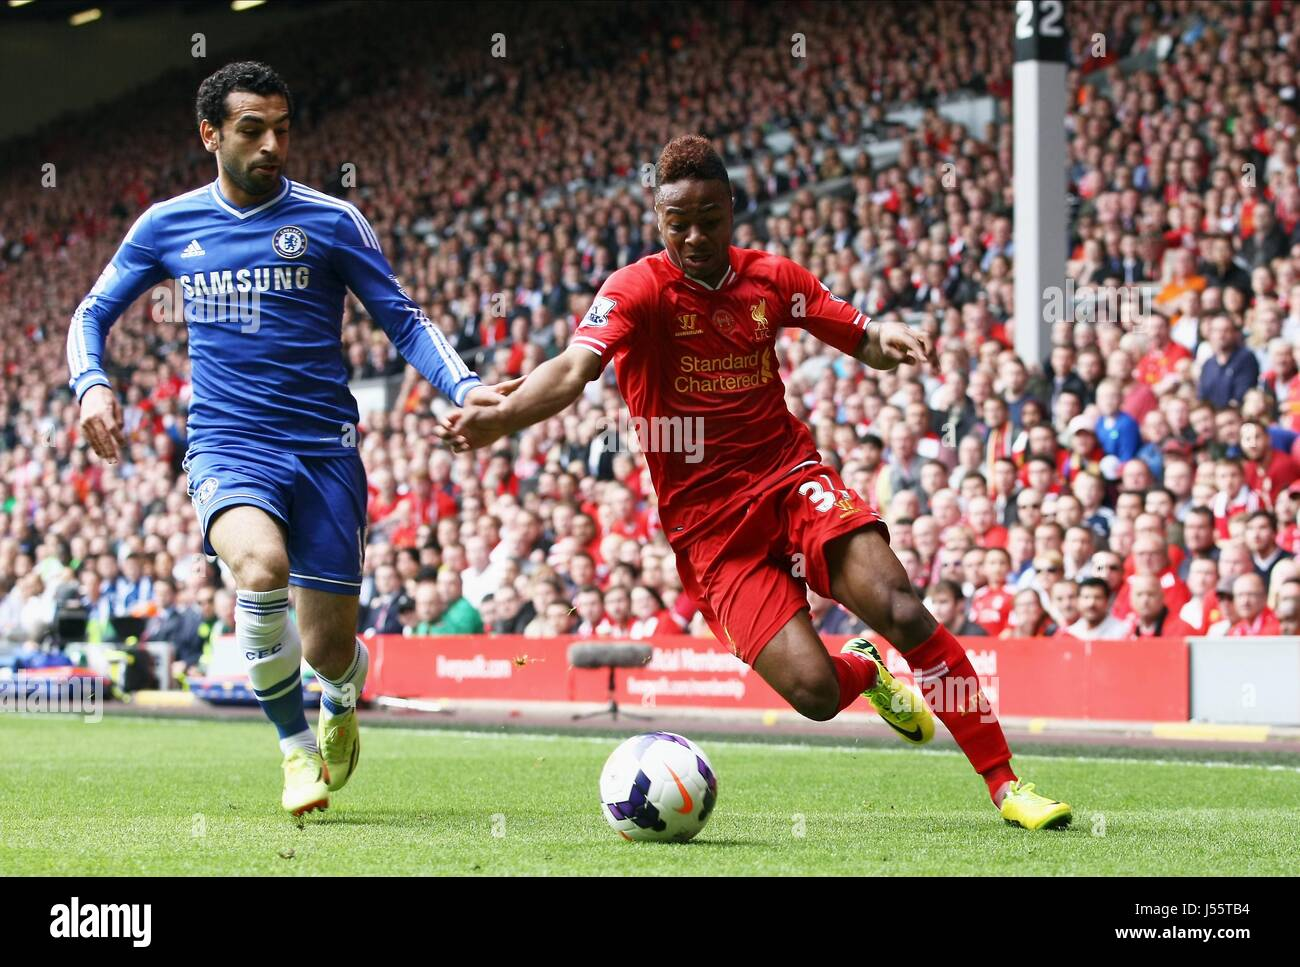 Mohamed Salah Raheem Sterlin Liverpool V Chelsea Anfield Liverpool Stock Photo Alamy